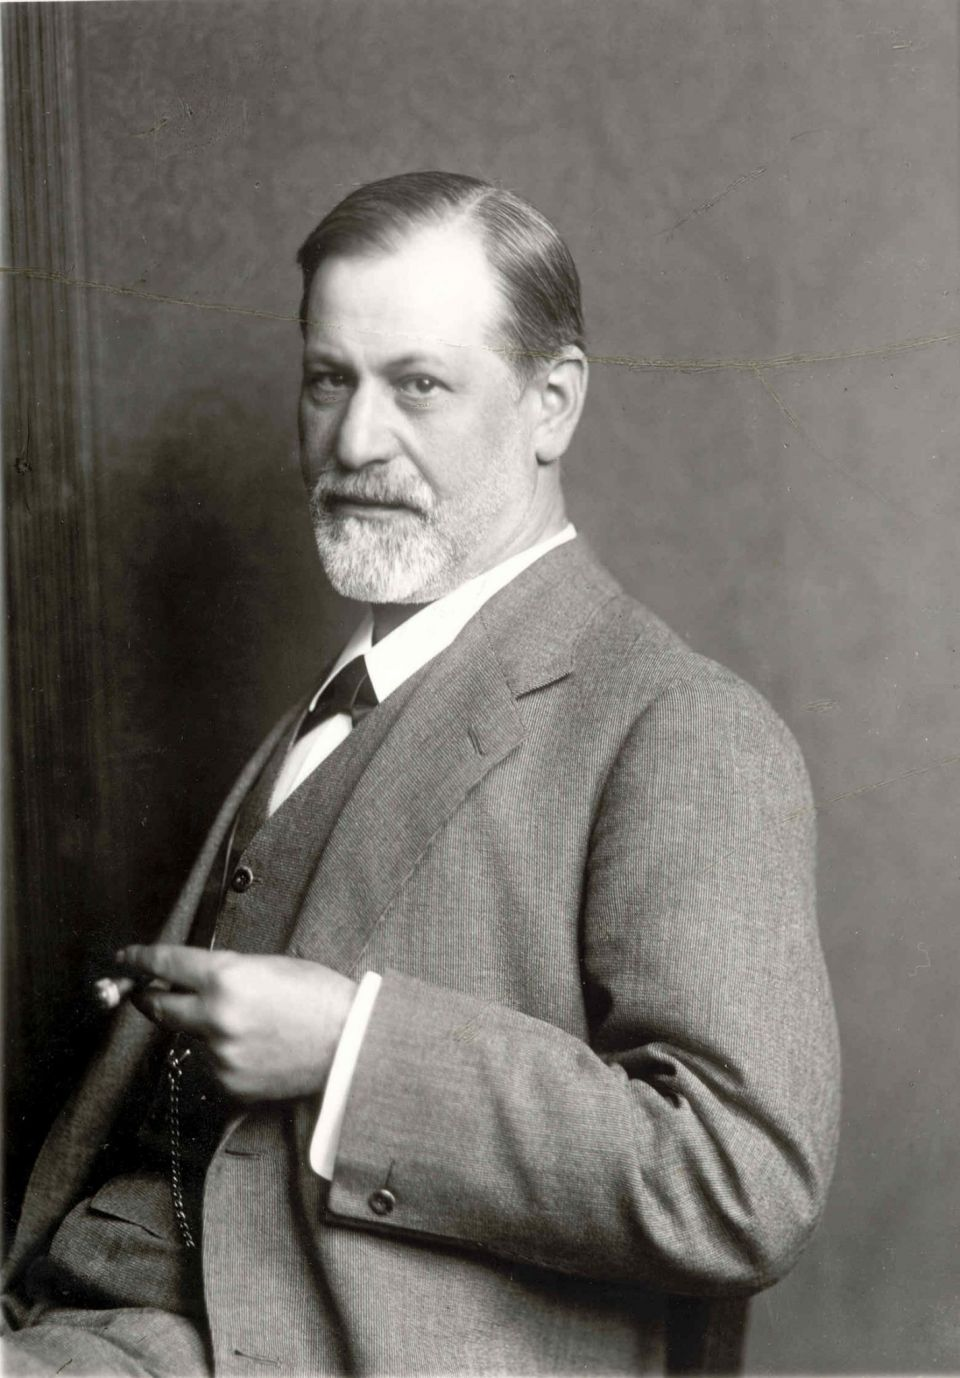 life of sigmund freud The life of sigmund freud schlomo sigusmund freud (sigmund freud) was born on may 6, 1856 in a small village in freiberg, moravia, which is now part of the czech republic he was born into a jewish merchant family, and moved to vienna when.